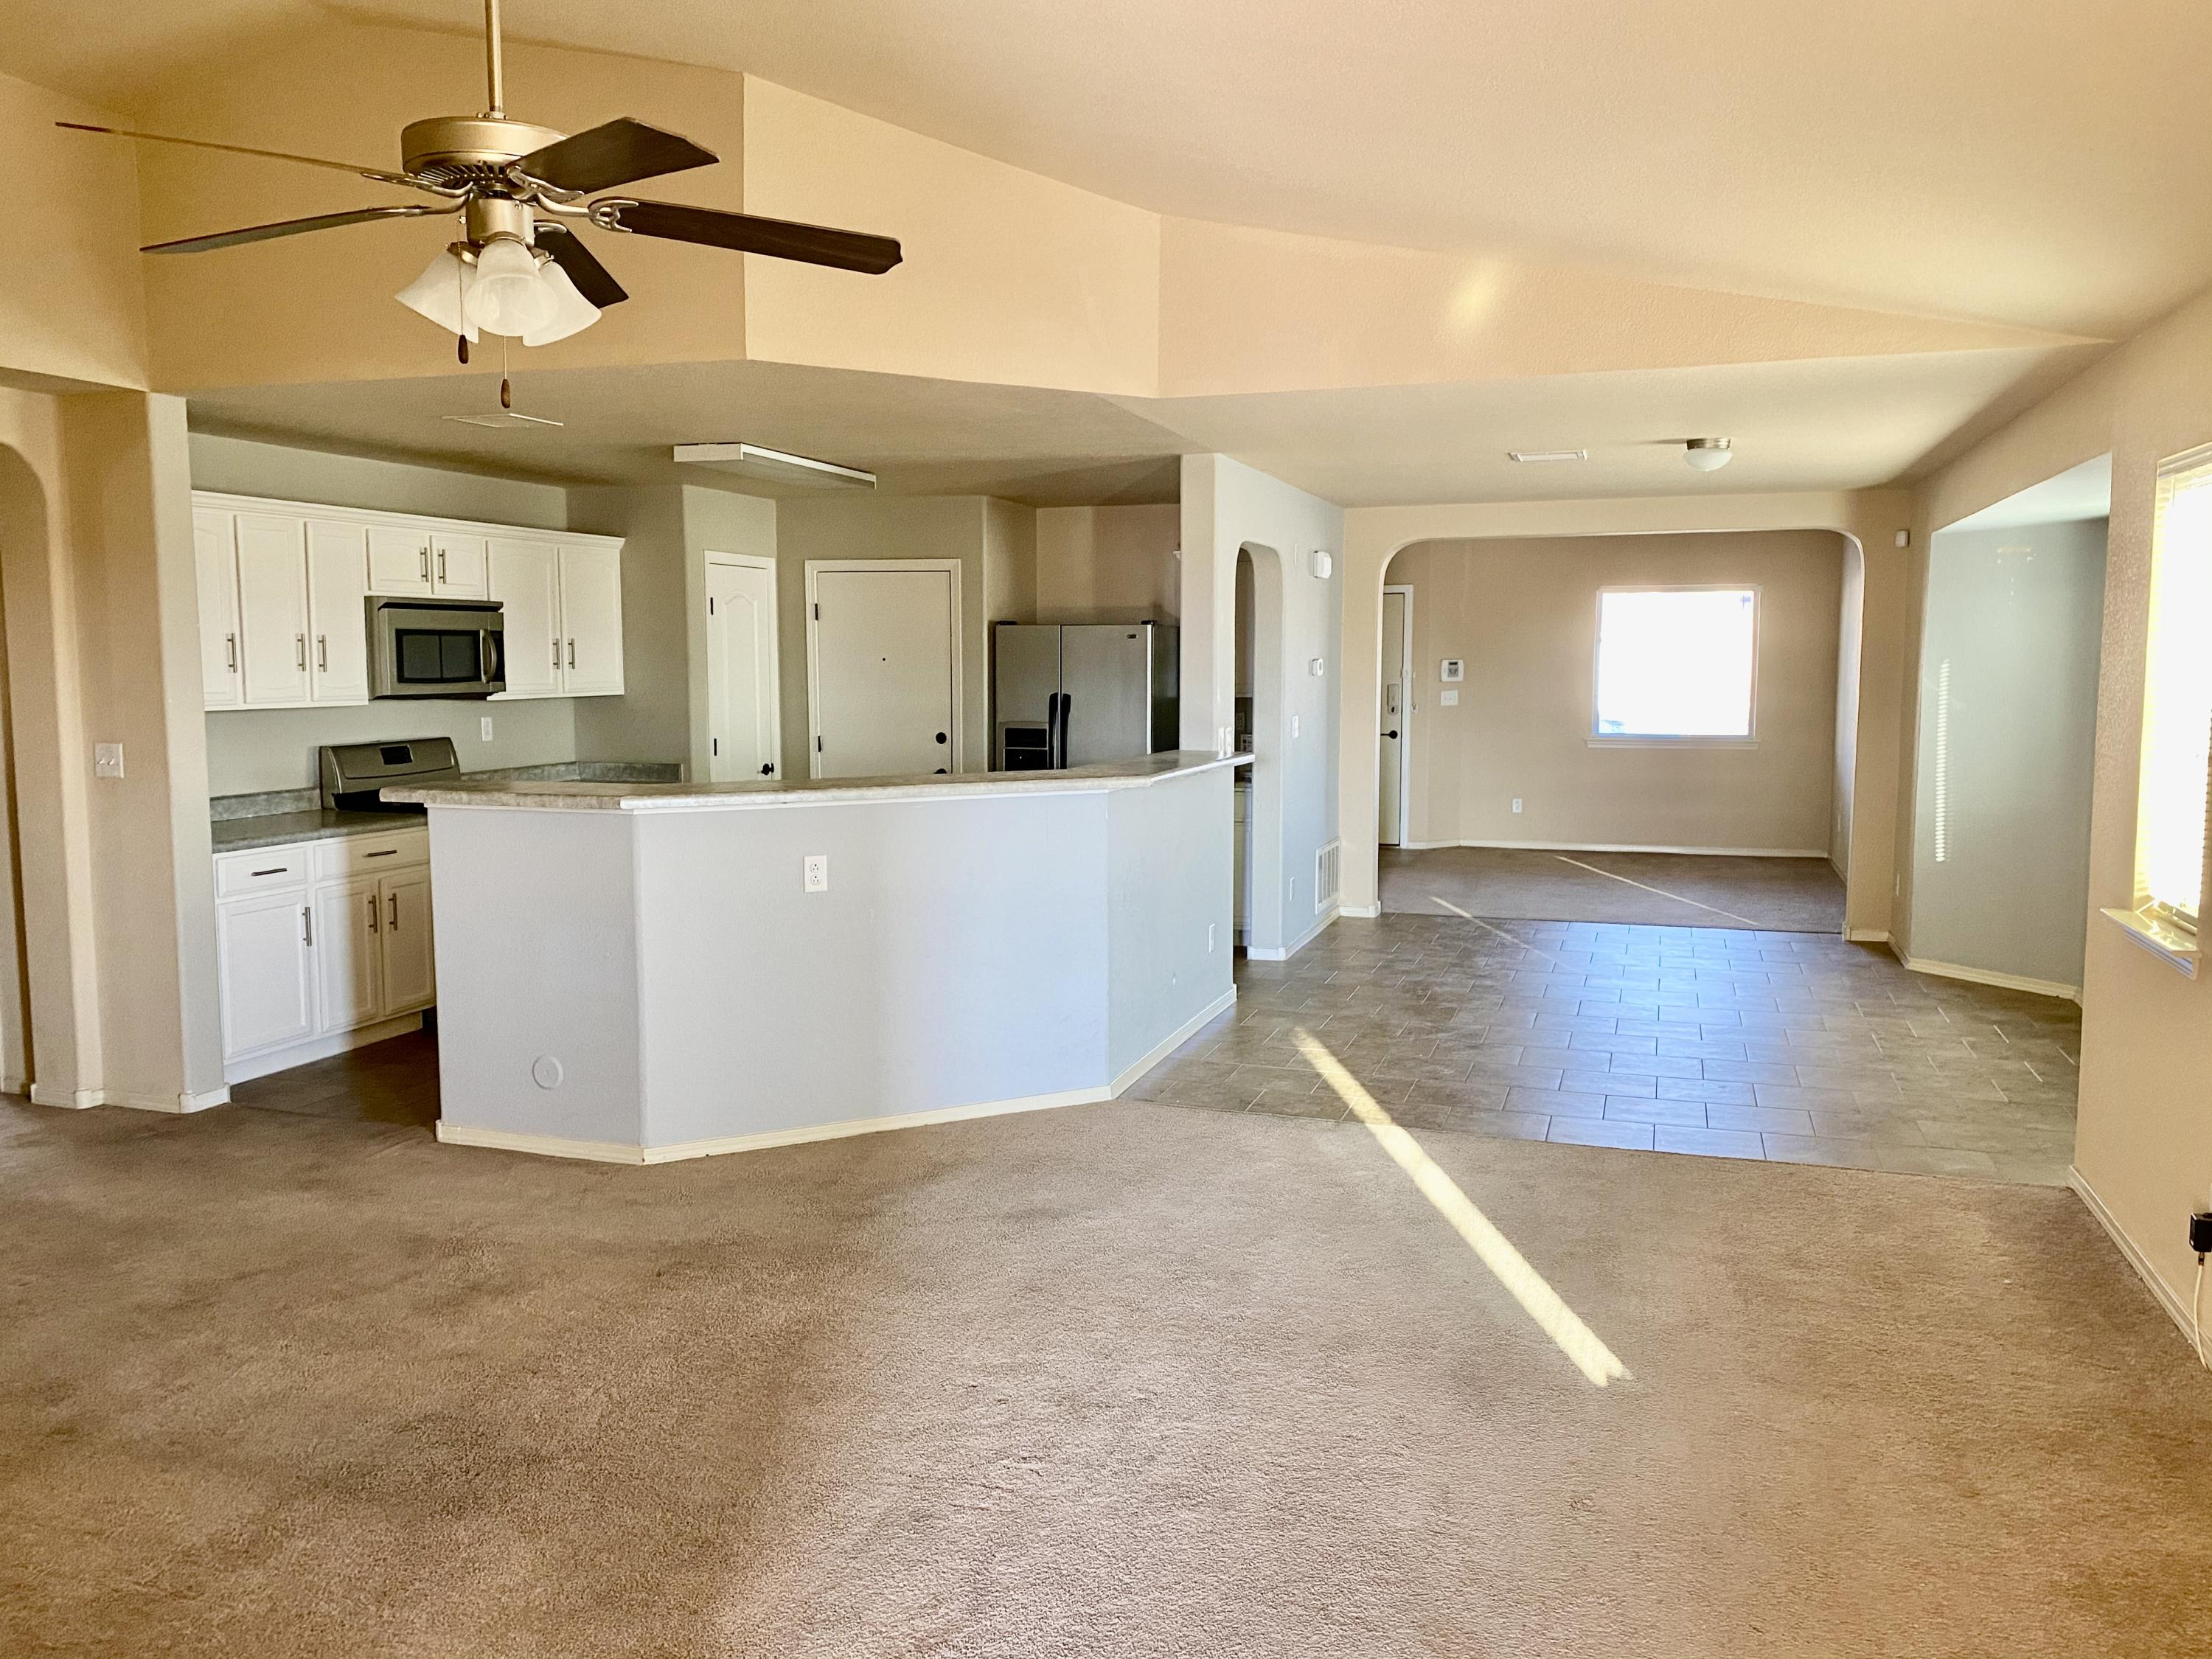 12009 copper hill Place, El Paso, Texas 79934, 3 Bedrooms Bedrooms, ,2 BathroomsBathrooms,Residential Rental,For Rent,copper hill,836005